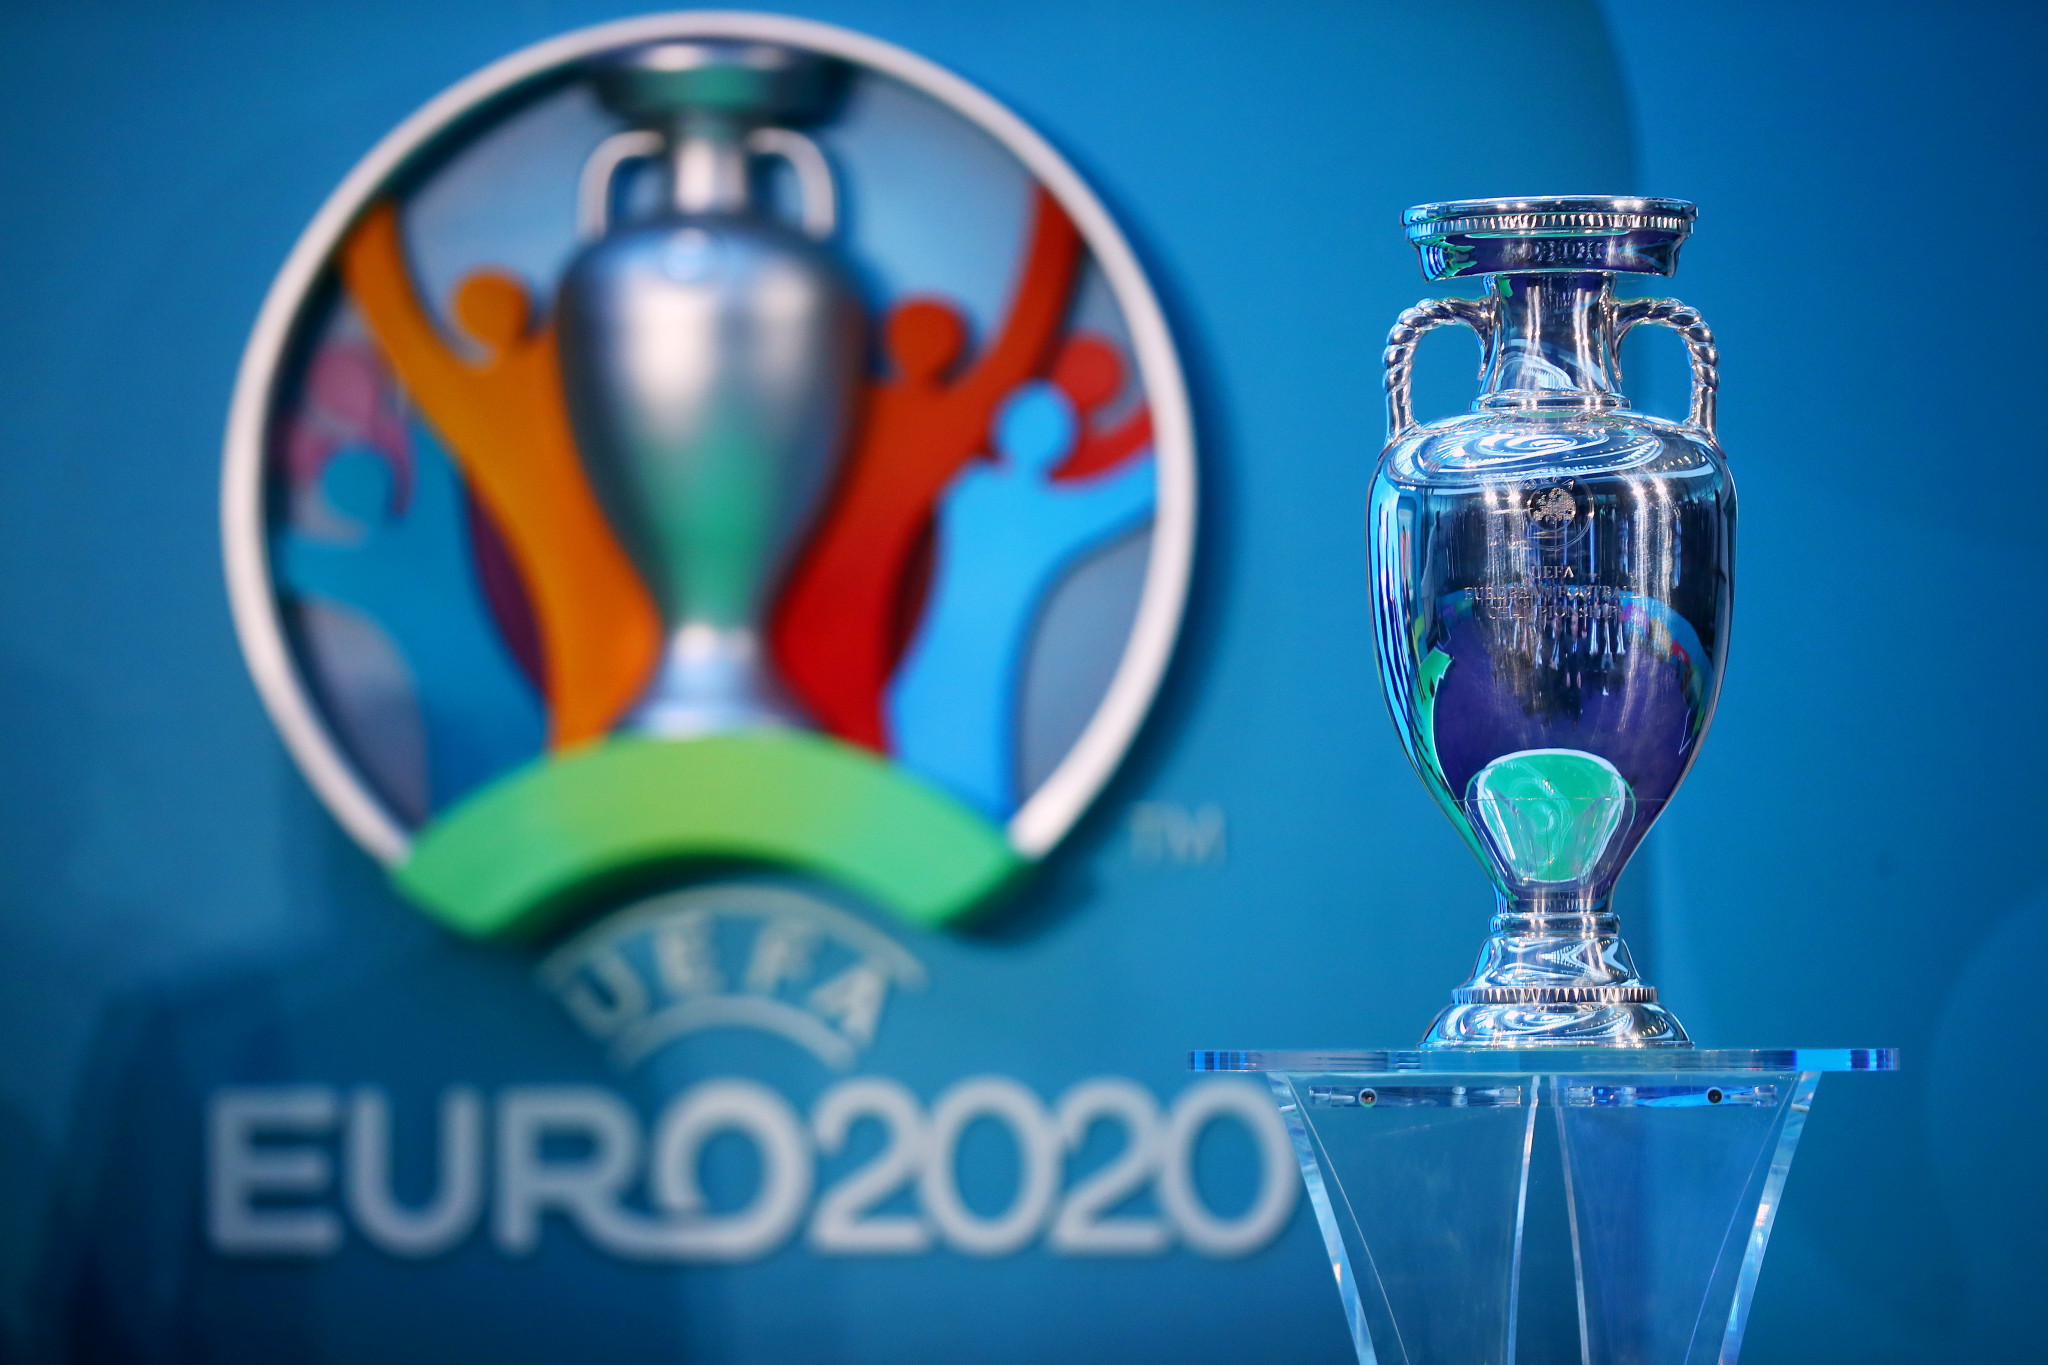 Euro 2020 has been pushed back to 2021 due to the pandemic ©Getty Images